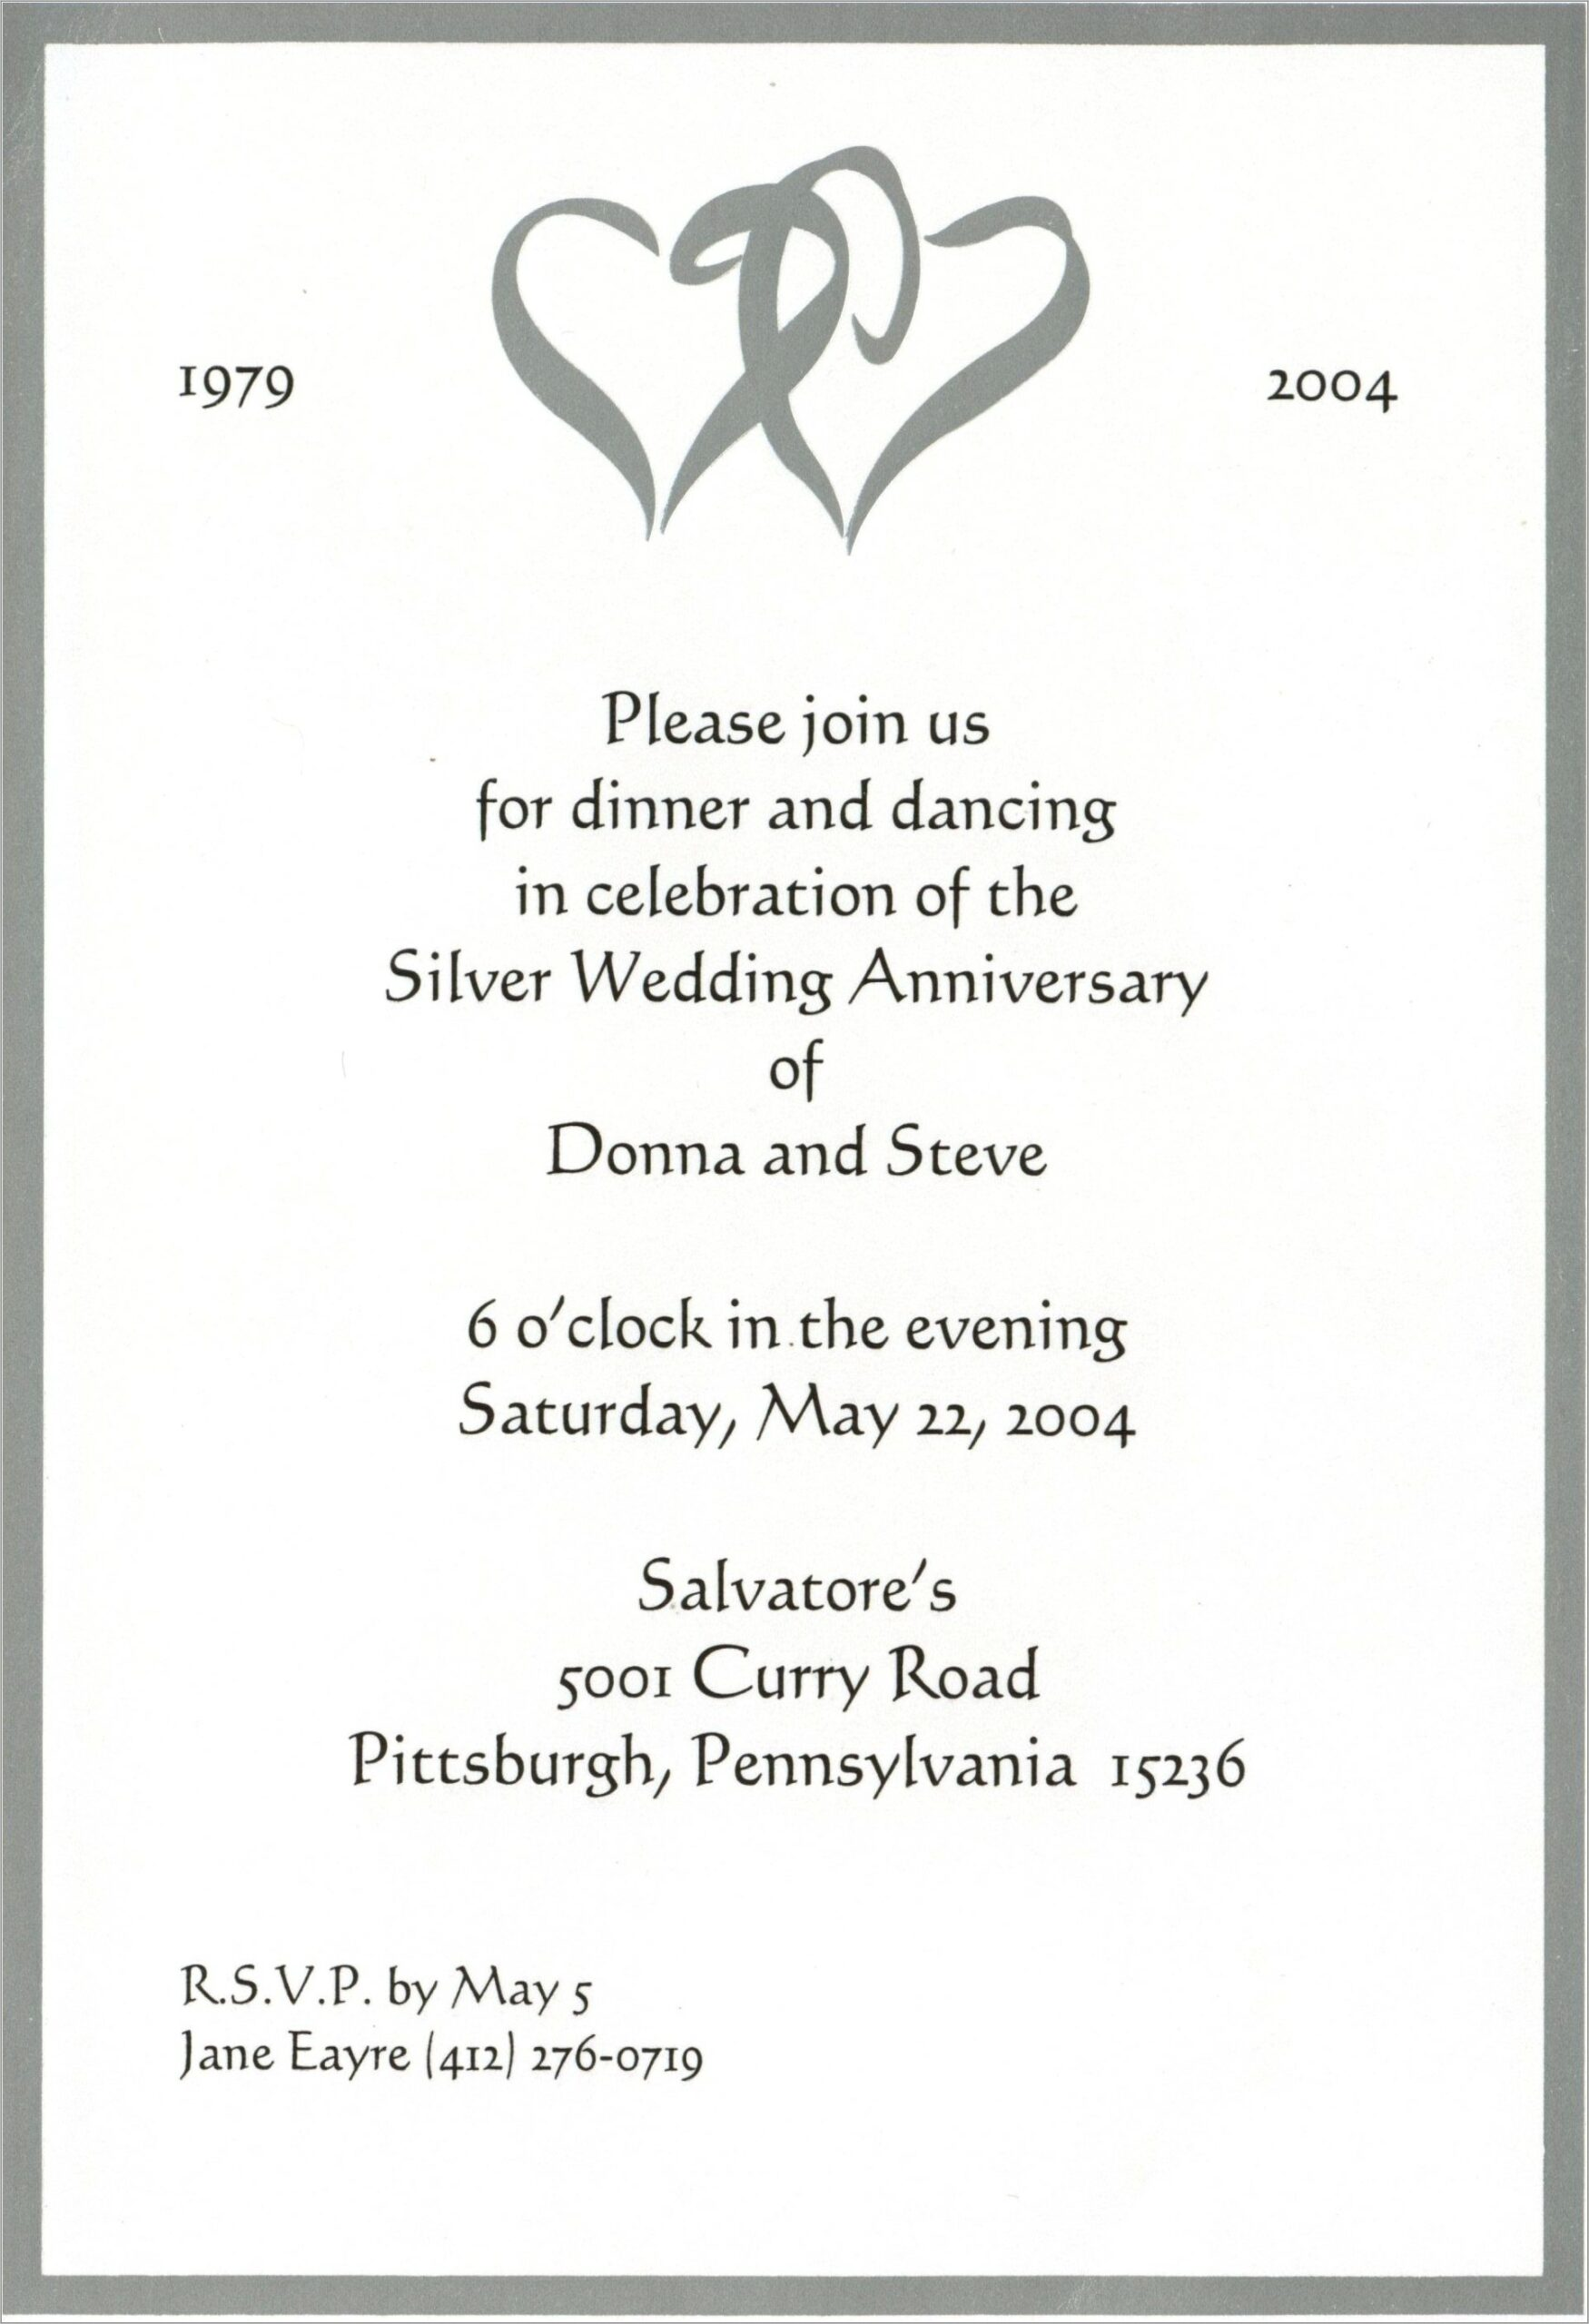 Marriage Invitation Wording For Friends From Bride